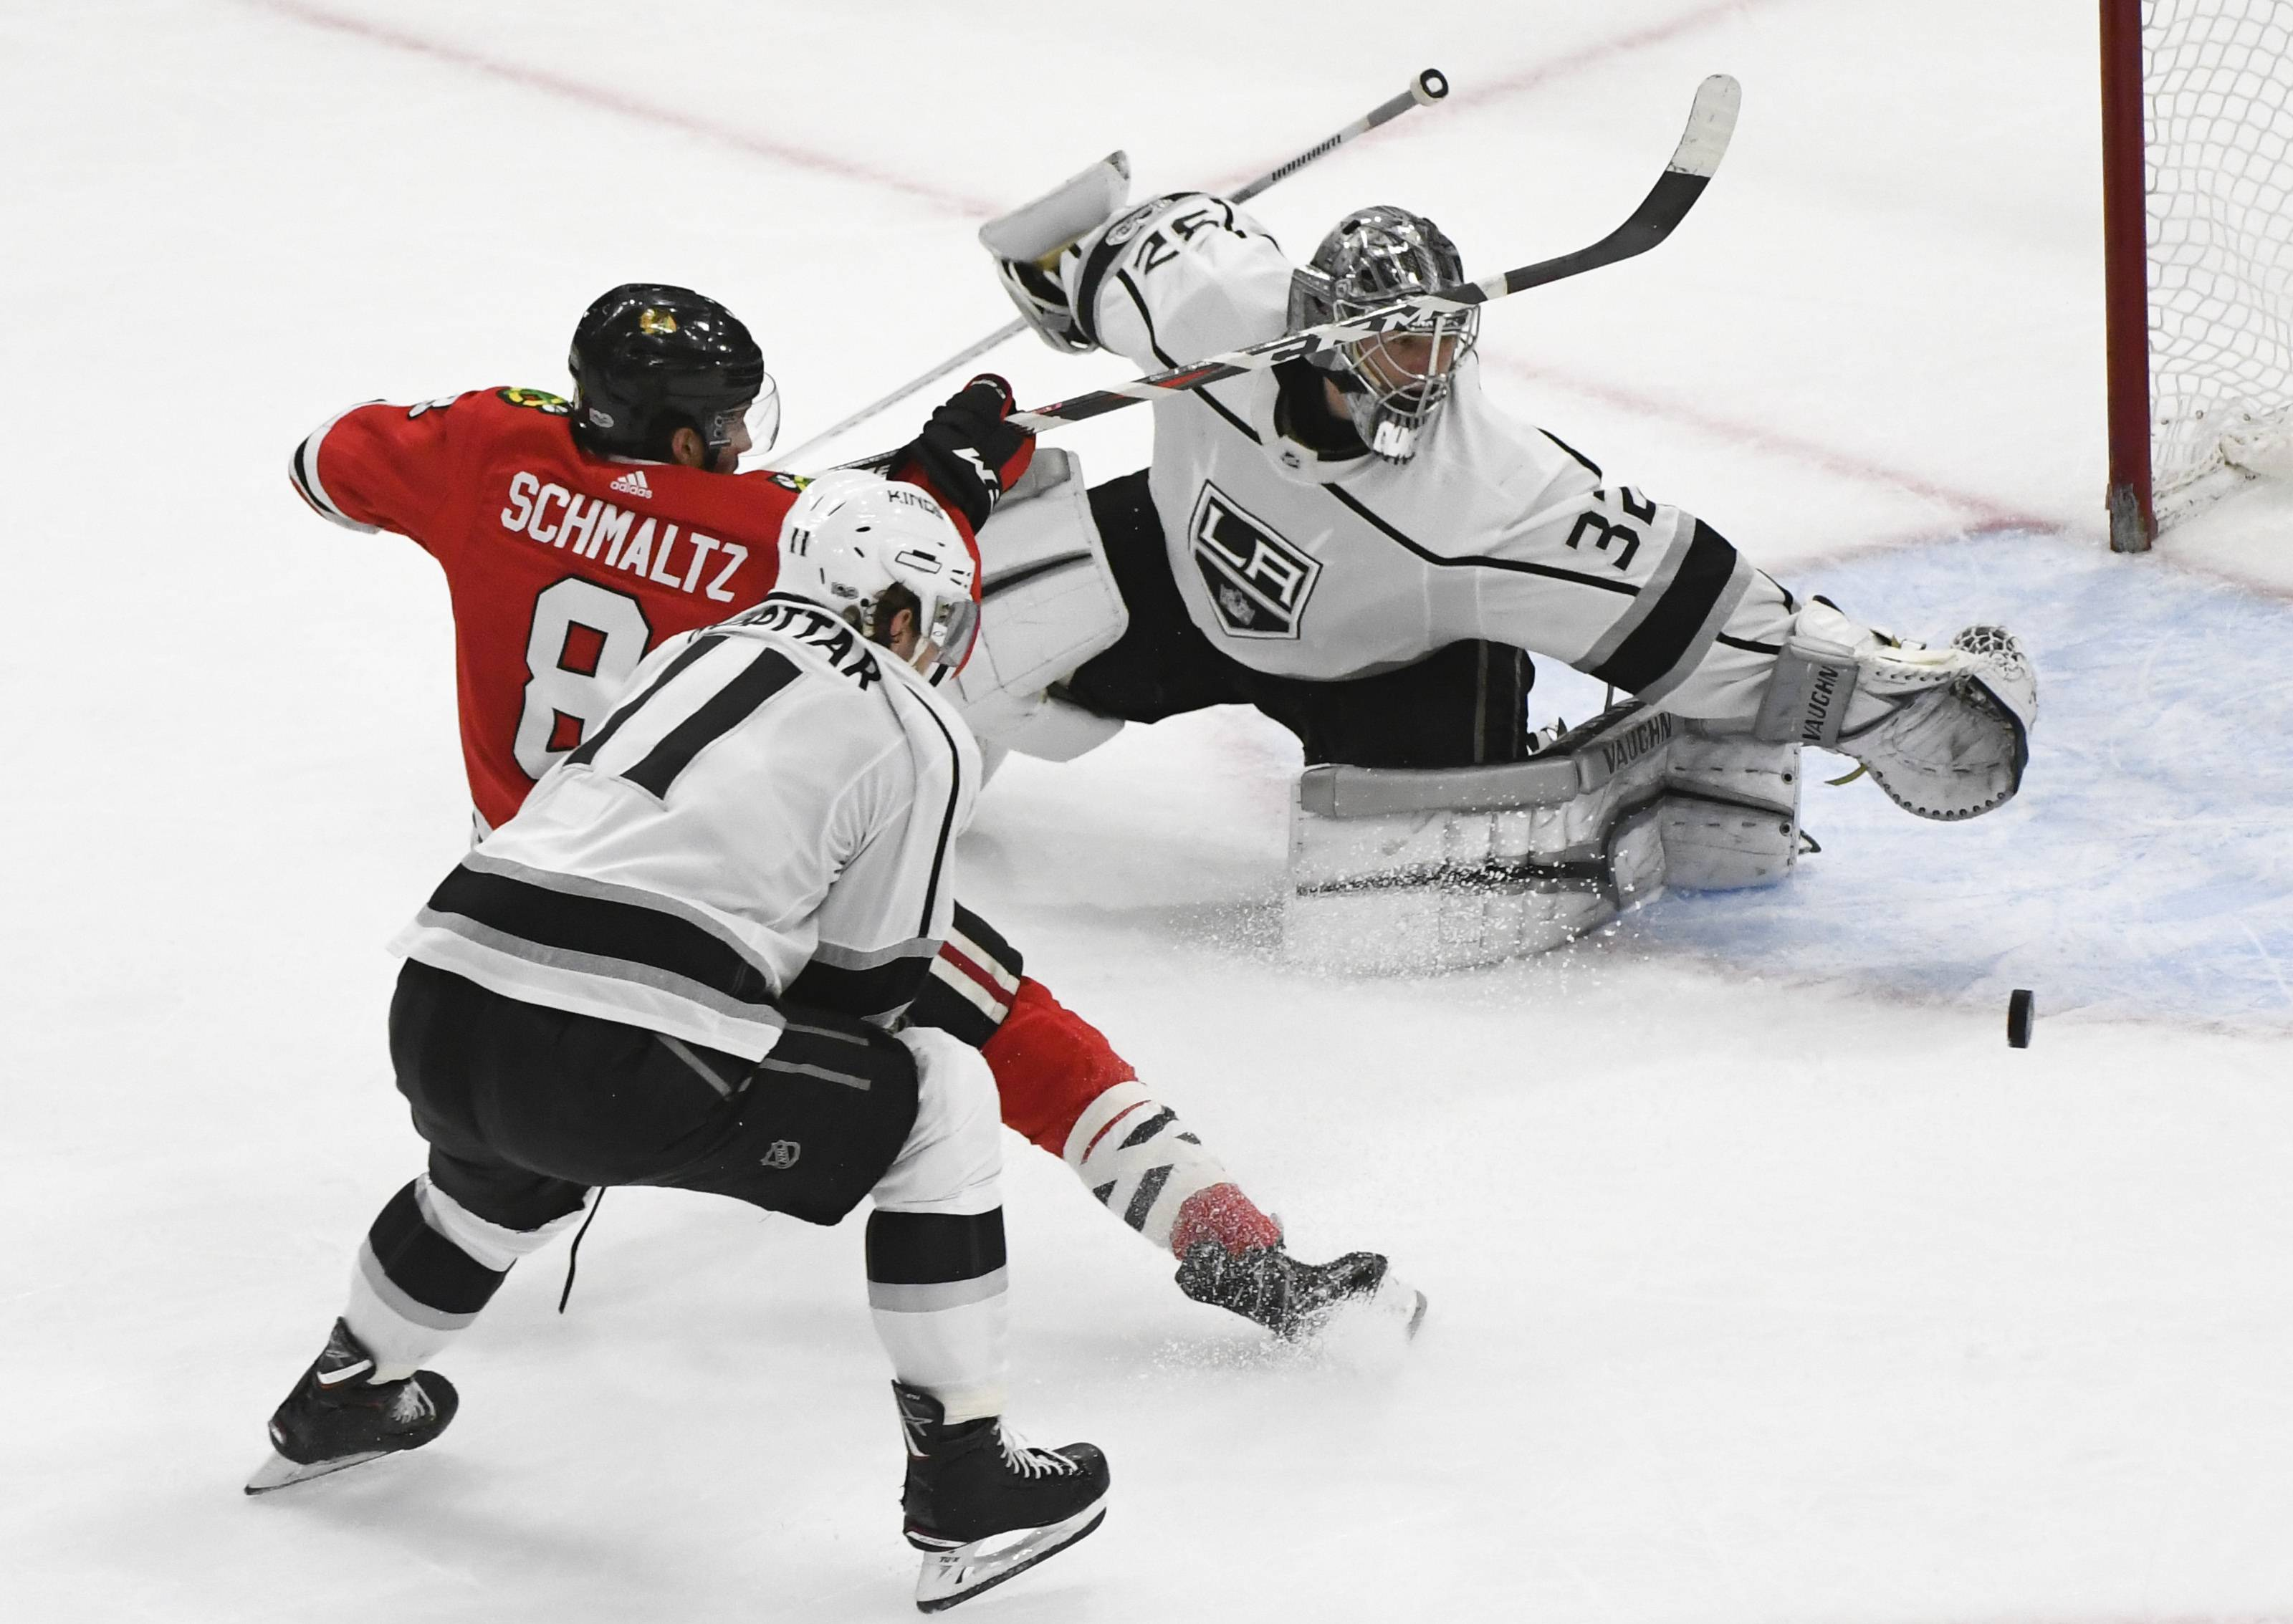 Chicago Blackhawks center Nick Schmaltz (8) shoots as Los Angeles Kings goalie Jonathan Quick (32) defends while center Anze Kopitar (11) helps on defense during the second period of an NHL hockey game Sunday Dec. 3, 2017, in Chicago. (AP Photo/Matt Marton)